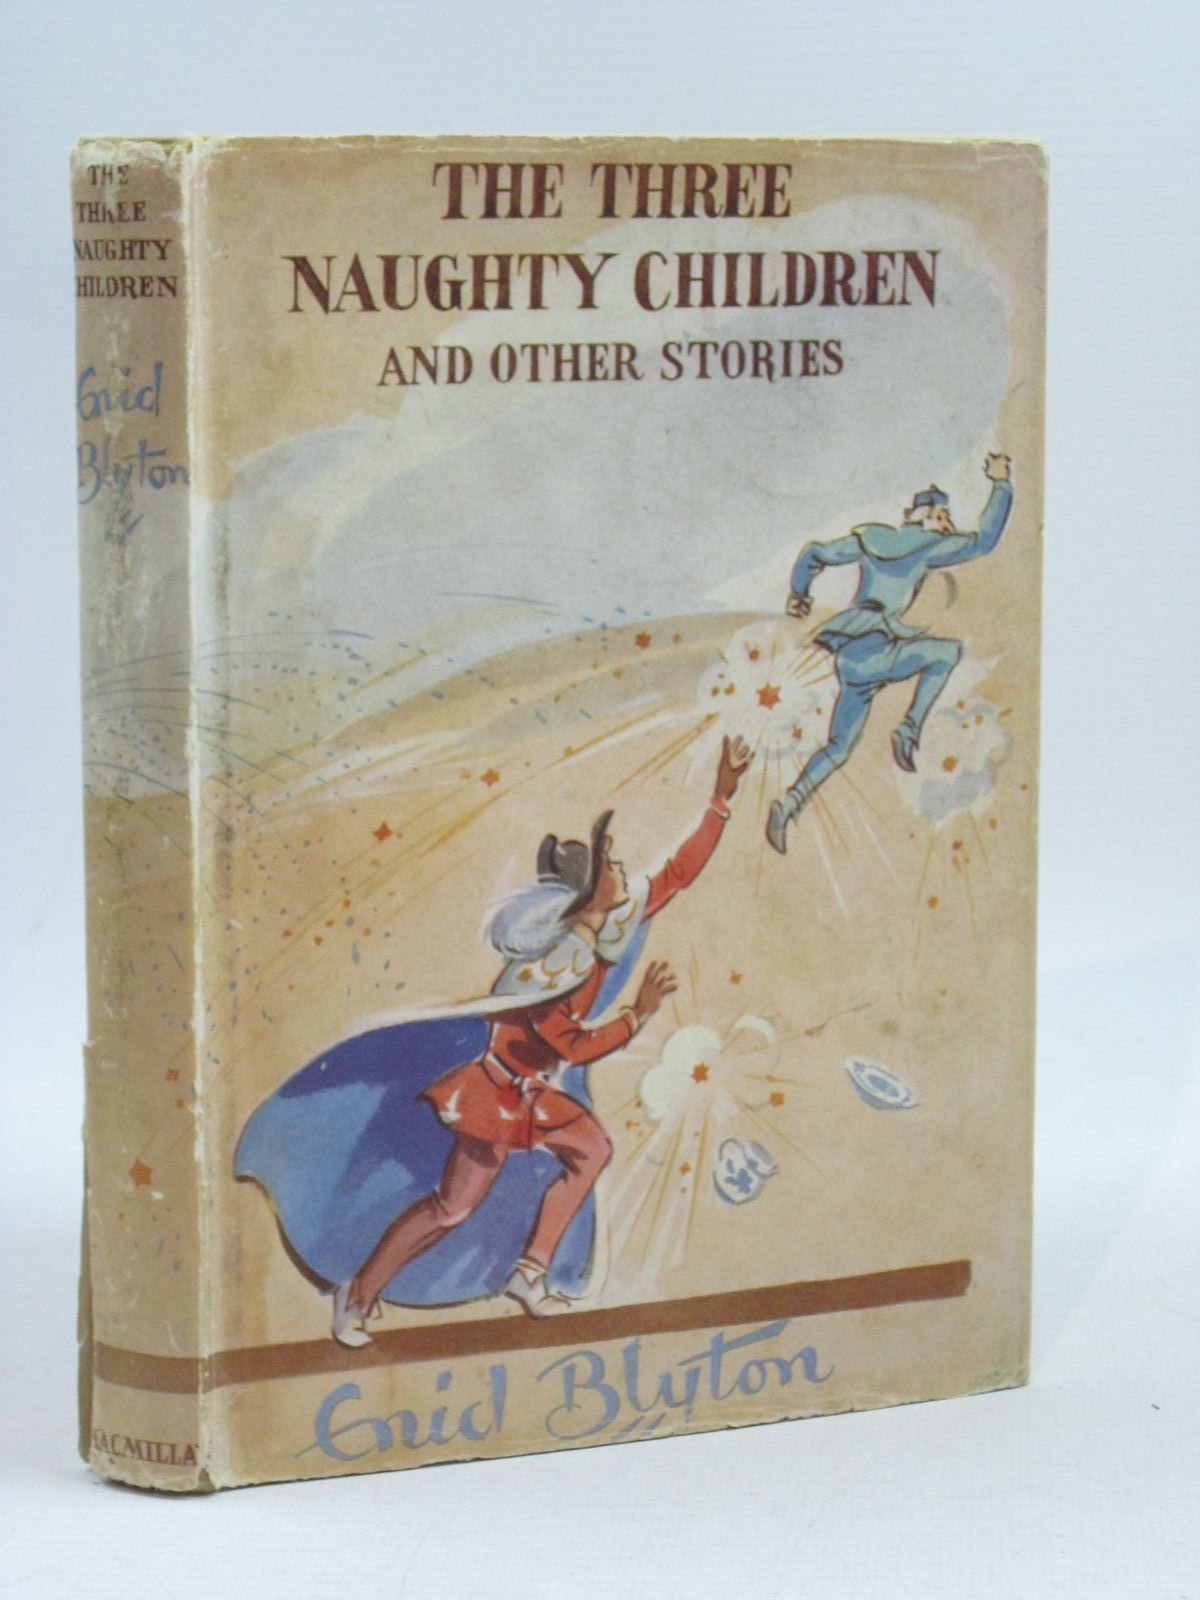 Photo of THE THREE NAUGHTY CHILDREN written by Blyton, Enid illustrated by Soper, Eileen published by Macmillan & Co. Ltd. (STOCK CODE: 1314610)  for sale by Stella & Rose's Books